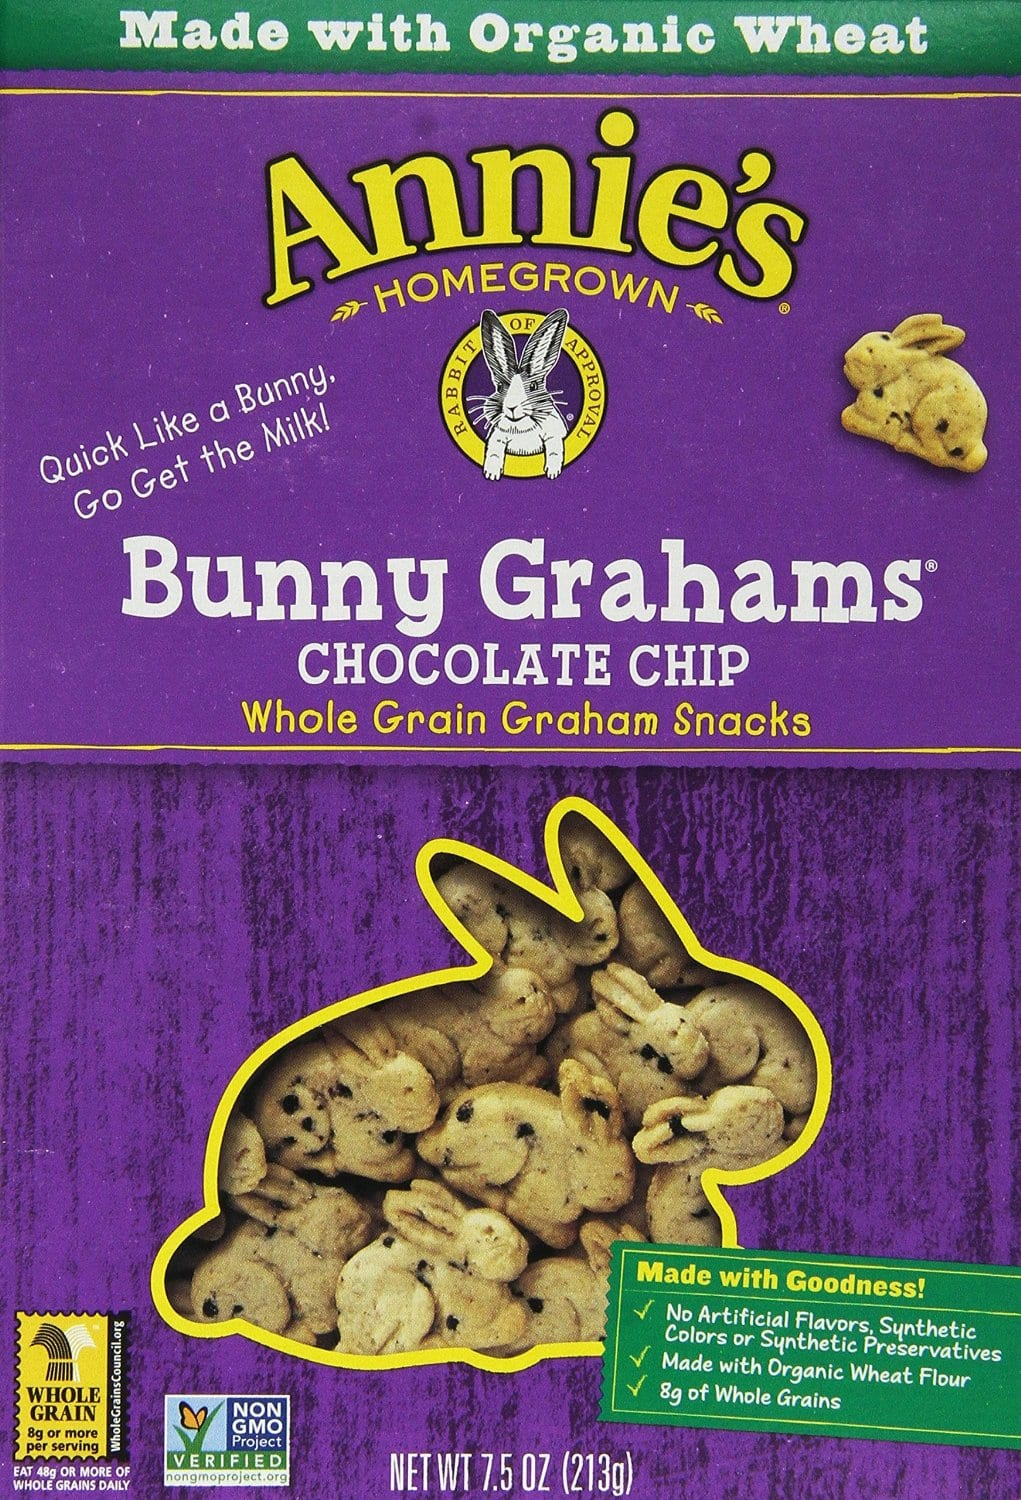 Annie's Homegrown Bunny Grahams Chocolate Chip, 7.5-Ounce Boxes (Pack of 12) $8.38 with s&s